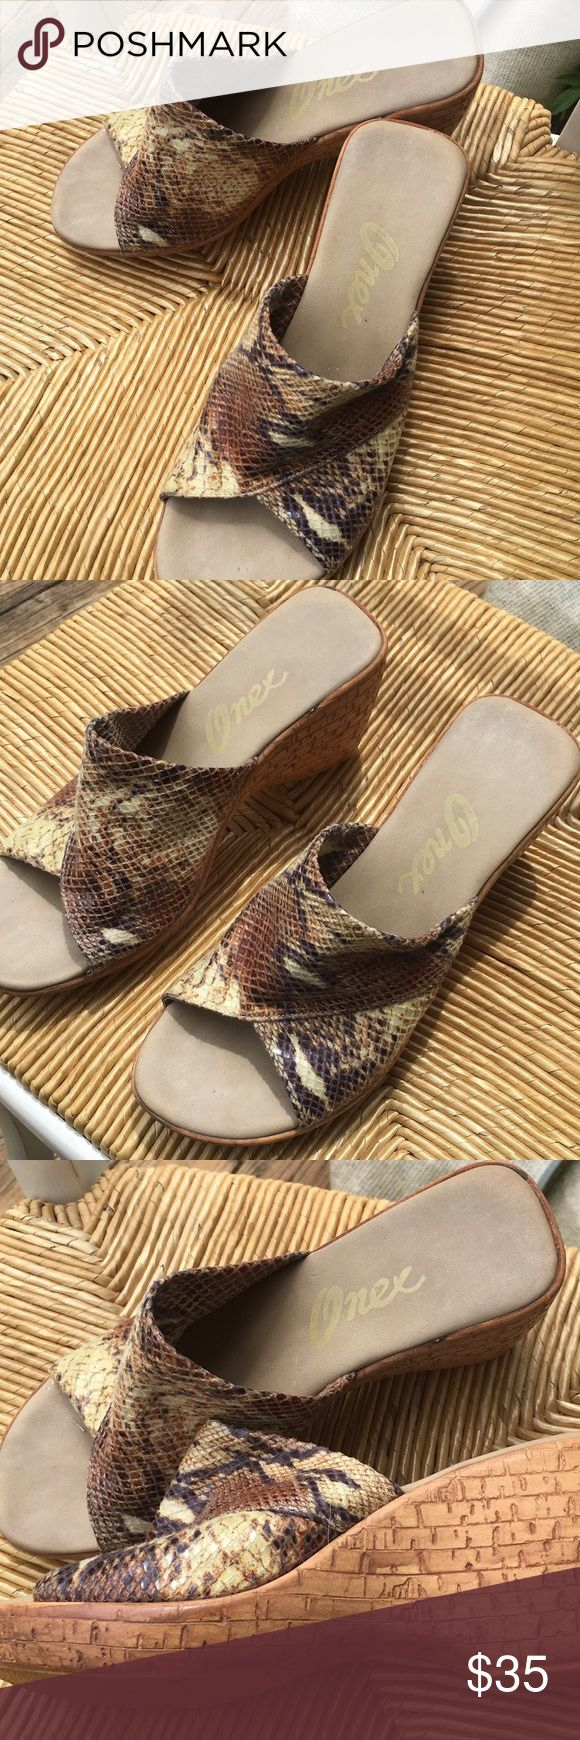 Beautiful soft Italian made leather sandals Gorgeous Italian made leather sandals uppers are soft leather with snake skin design made in Italy onex Shoes Wedges